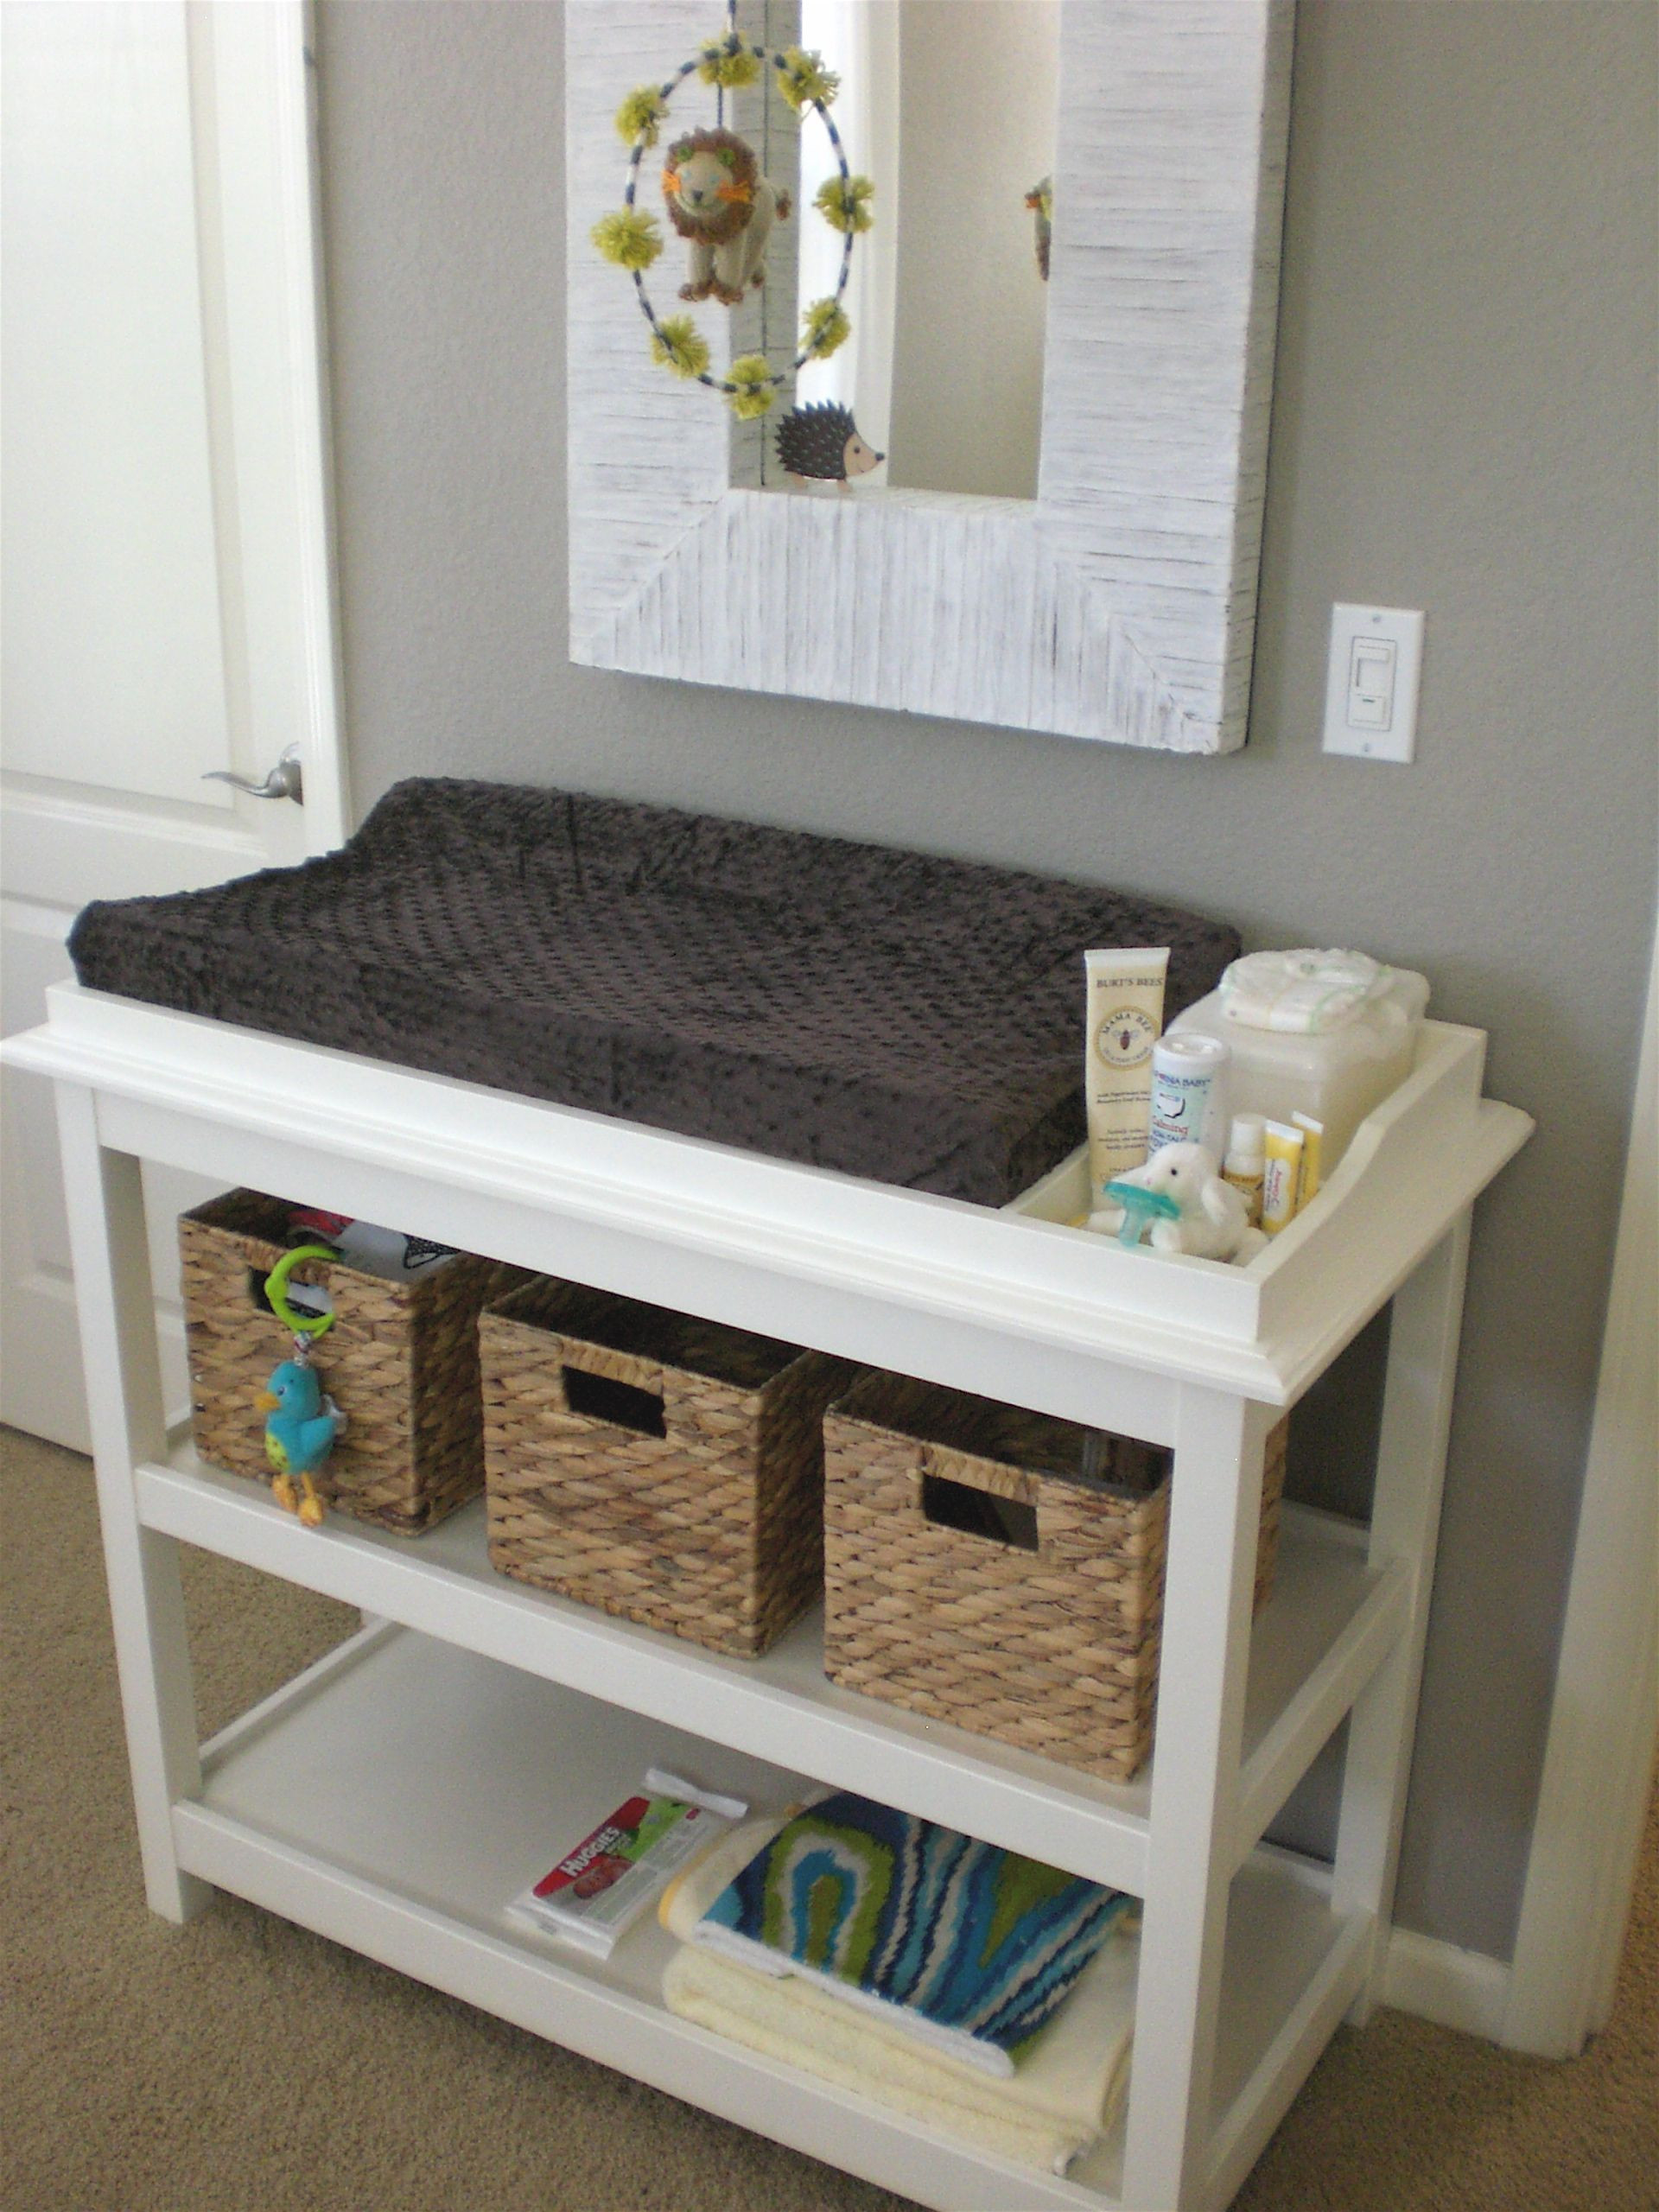 Best ideas about DIY Baby Changing Table . Save or Pin Repurposed changing table Benjamin Cole Pinterest Now.